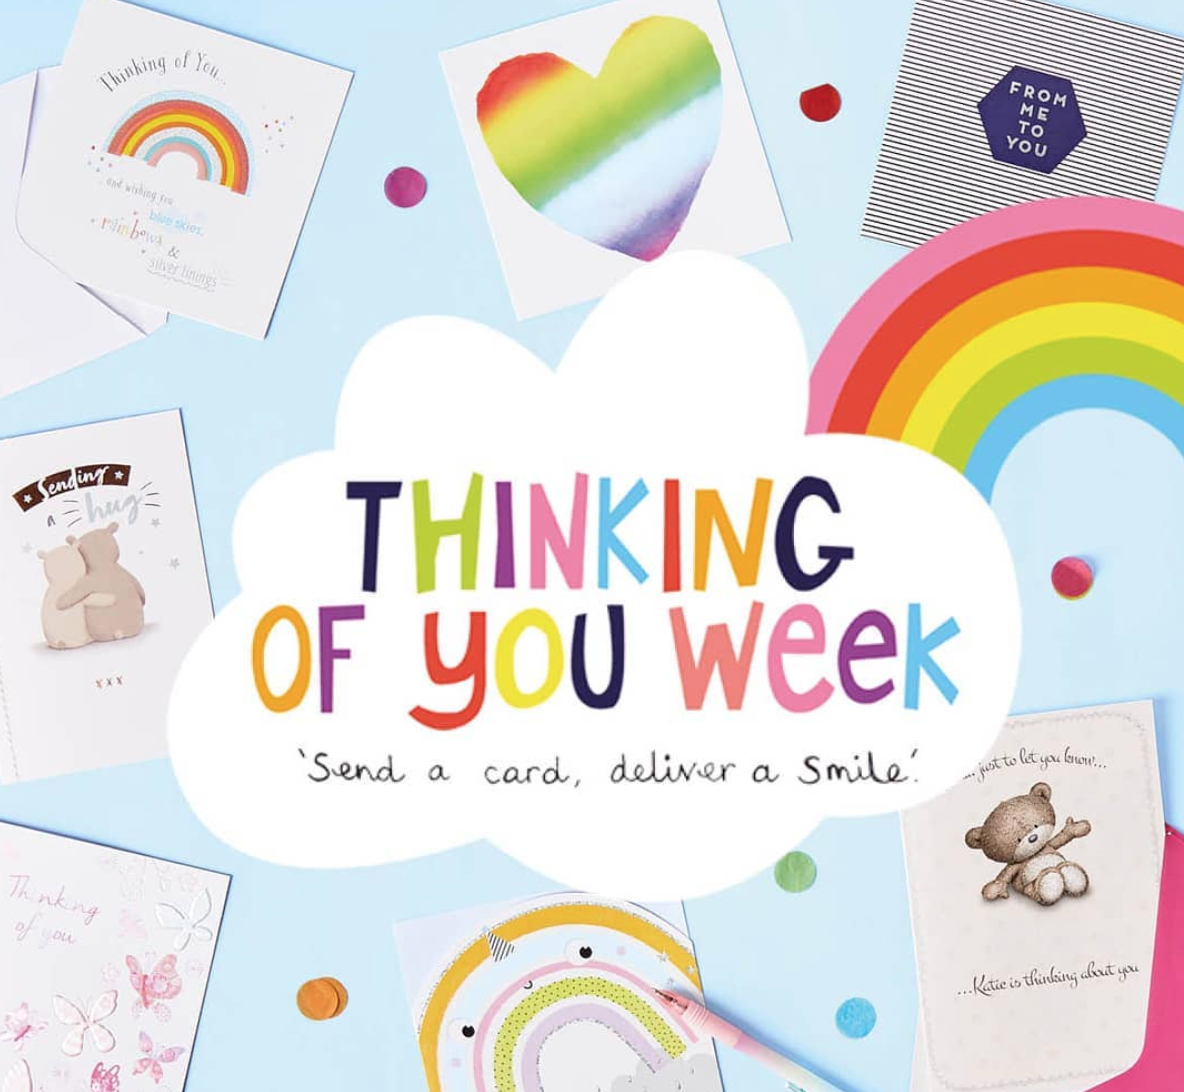 Above: Card Factory got behind Thinking of You Week this year, both instore (with dedicated PoS) and on social media.